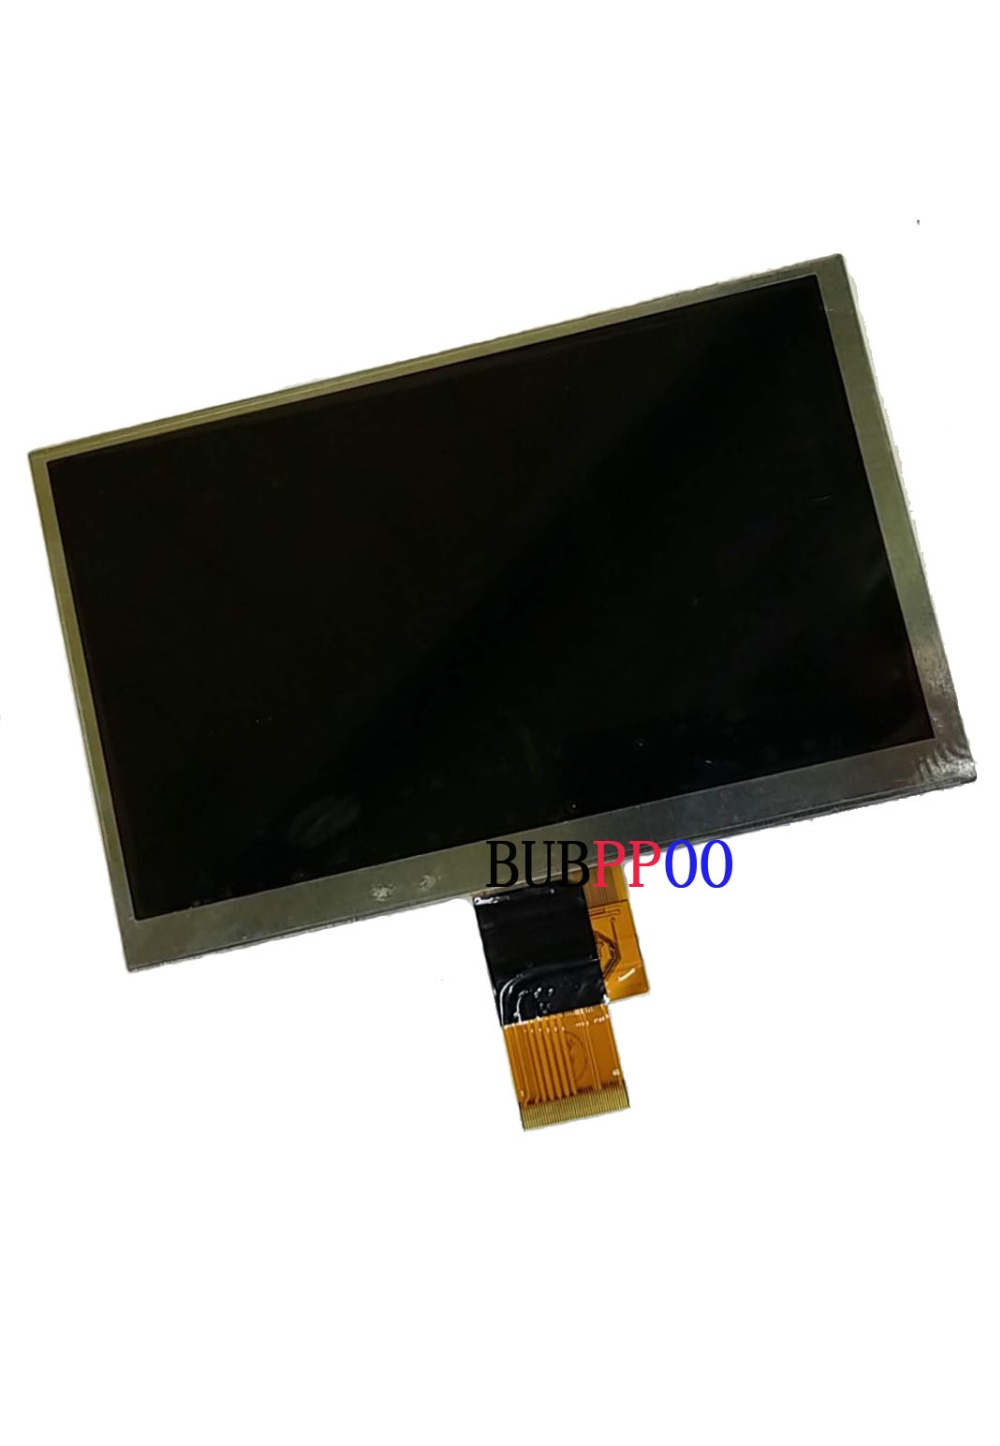 D35 7 Inch Tablet Display HE070NA-13B 32001358-10 165.5x105.5mm Thickness 3mm Tablet PC Display LCD Free Shipping